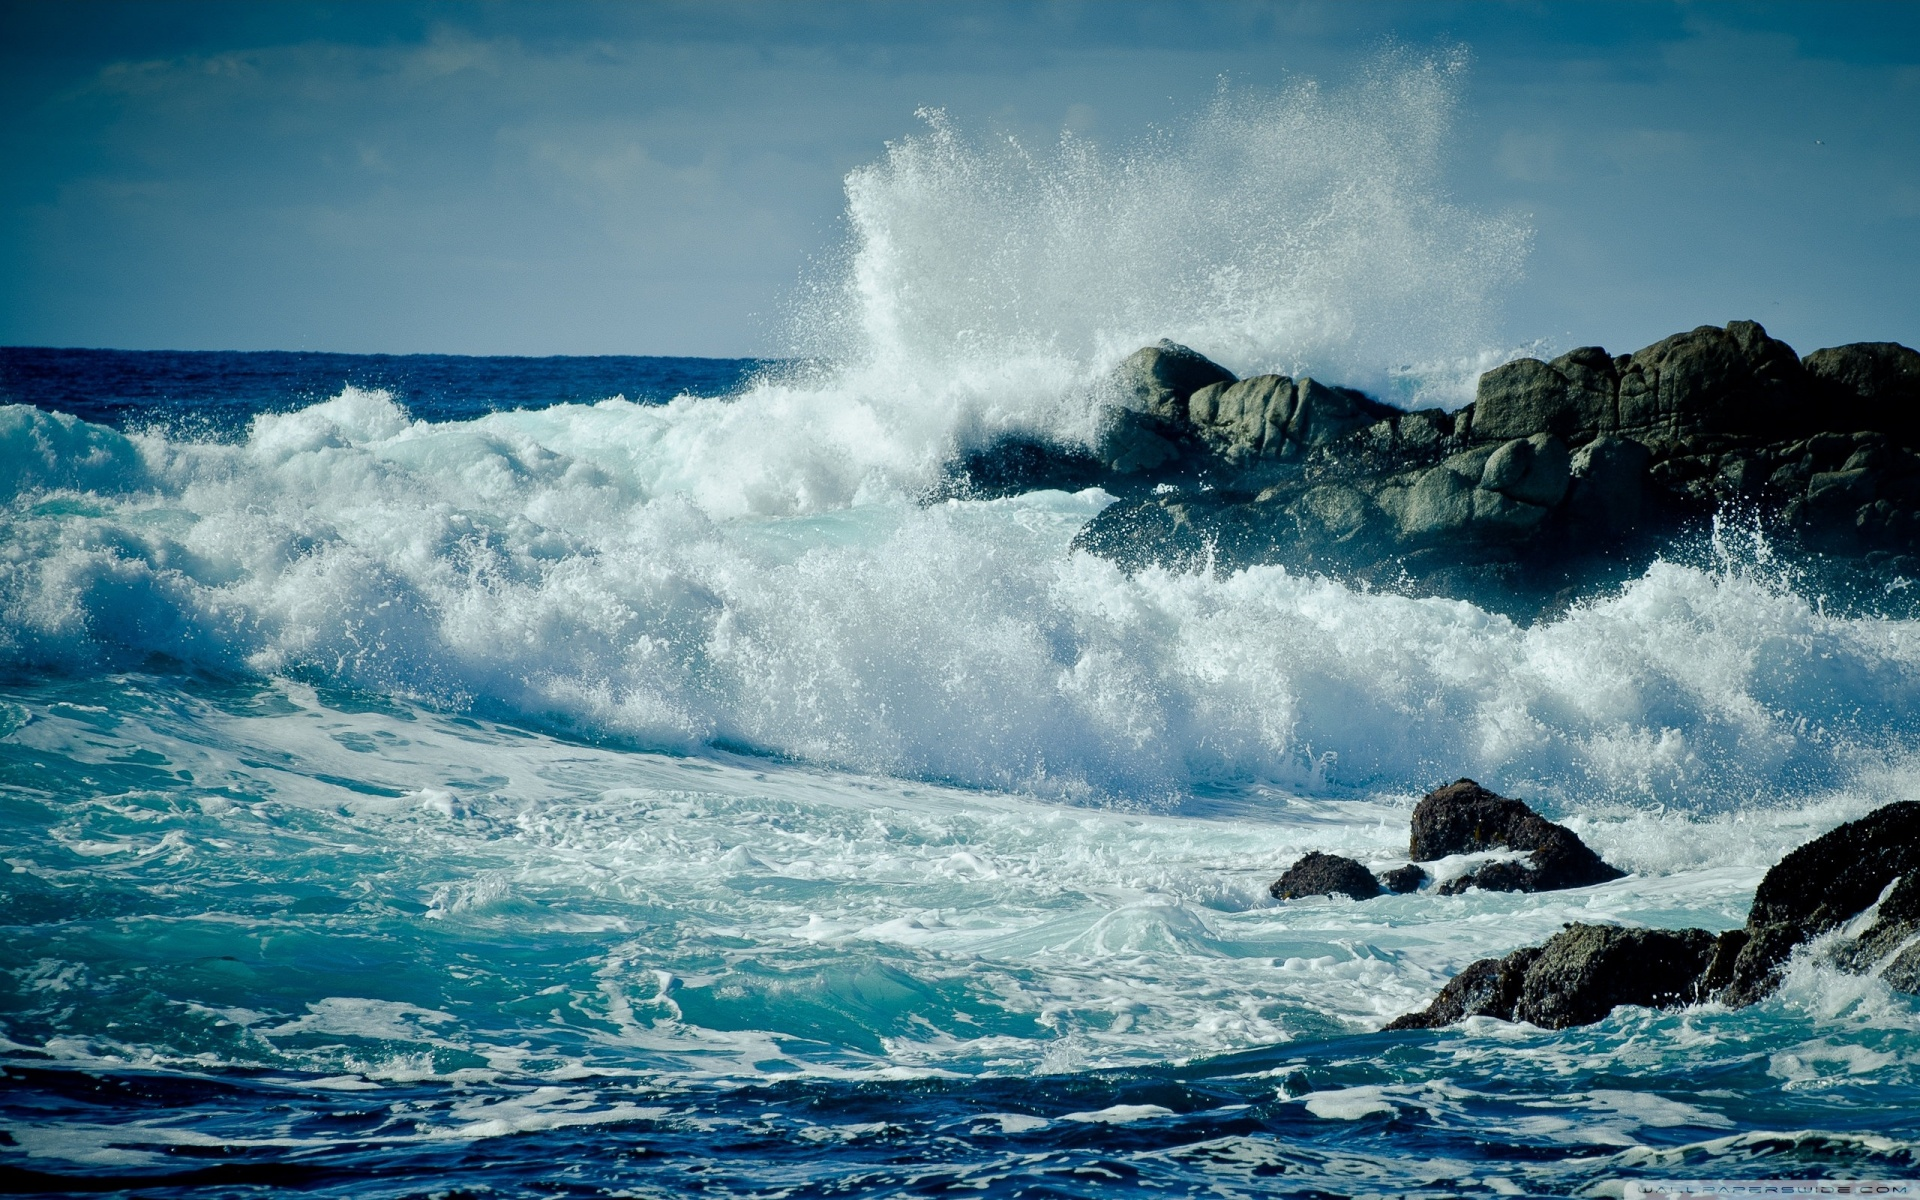 Ocean Astonishing Waves Wallpaper Wallpapers Xpx 1920x1200px